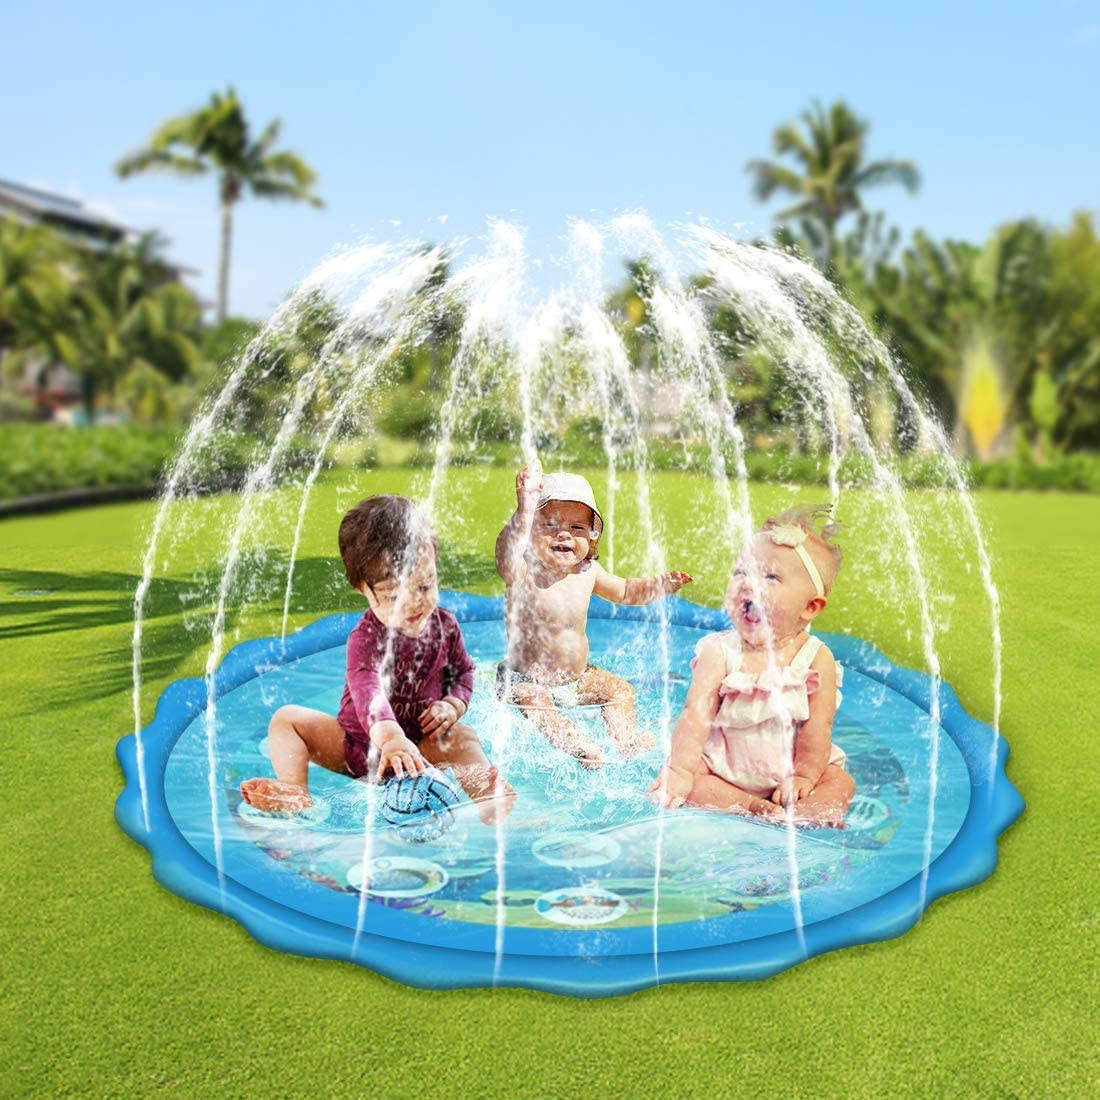 Large Splash Pad,Inflatable Water Mat Toys,1-12 Year Old Children/'s Fun Sprinkler Wading Pool for Learning MHDYT Water Sprinkler for Kids 67/″Oversized Outdoor Swimming Pool for Babies and Toddlers